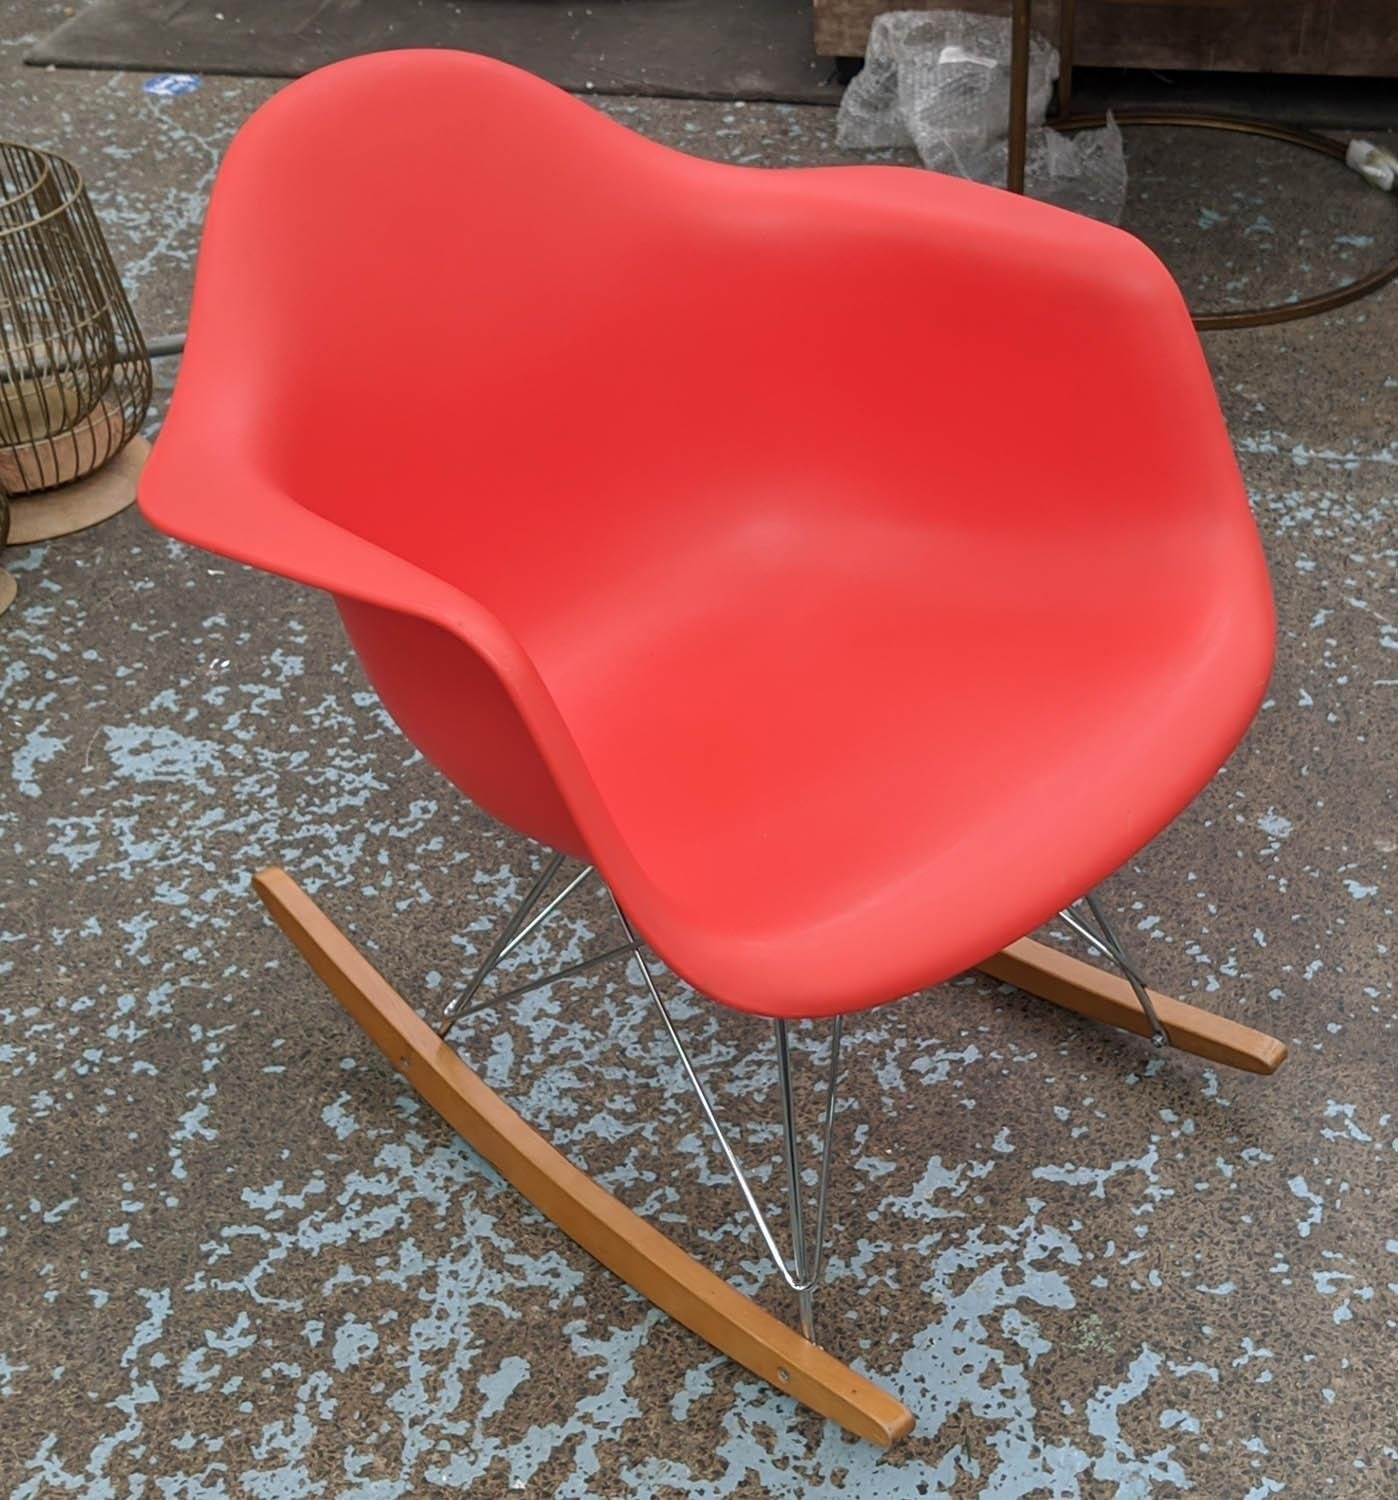 VITRA RAR ROCKING CHAIR, by Charles and Ray Eames, red, 62cm x 70cm H.(scratch to front)